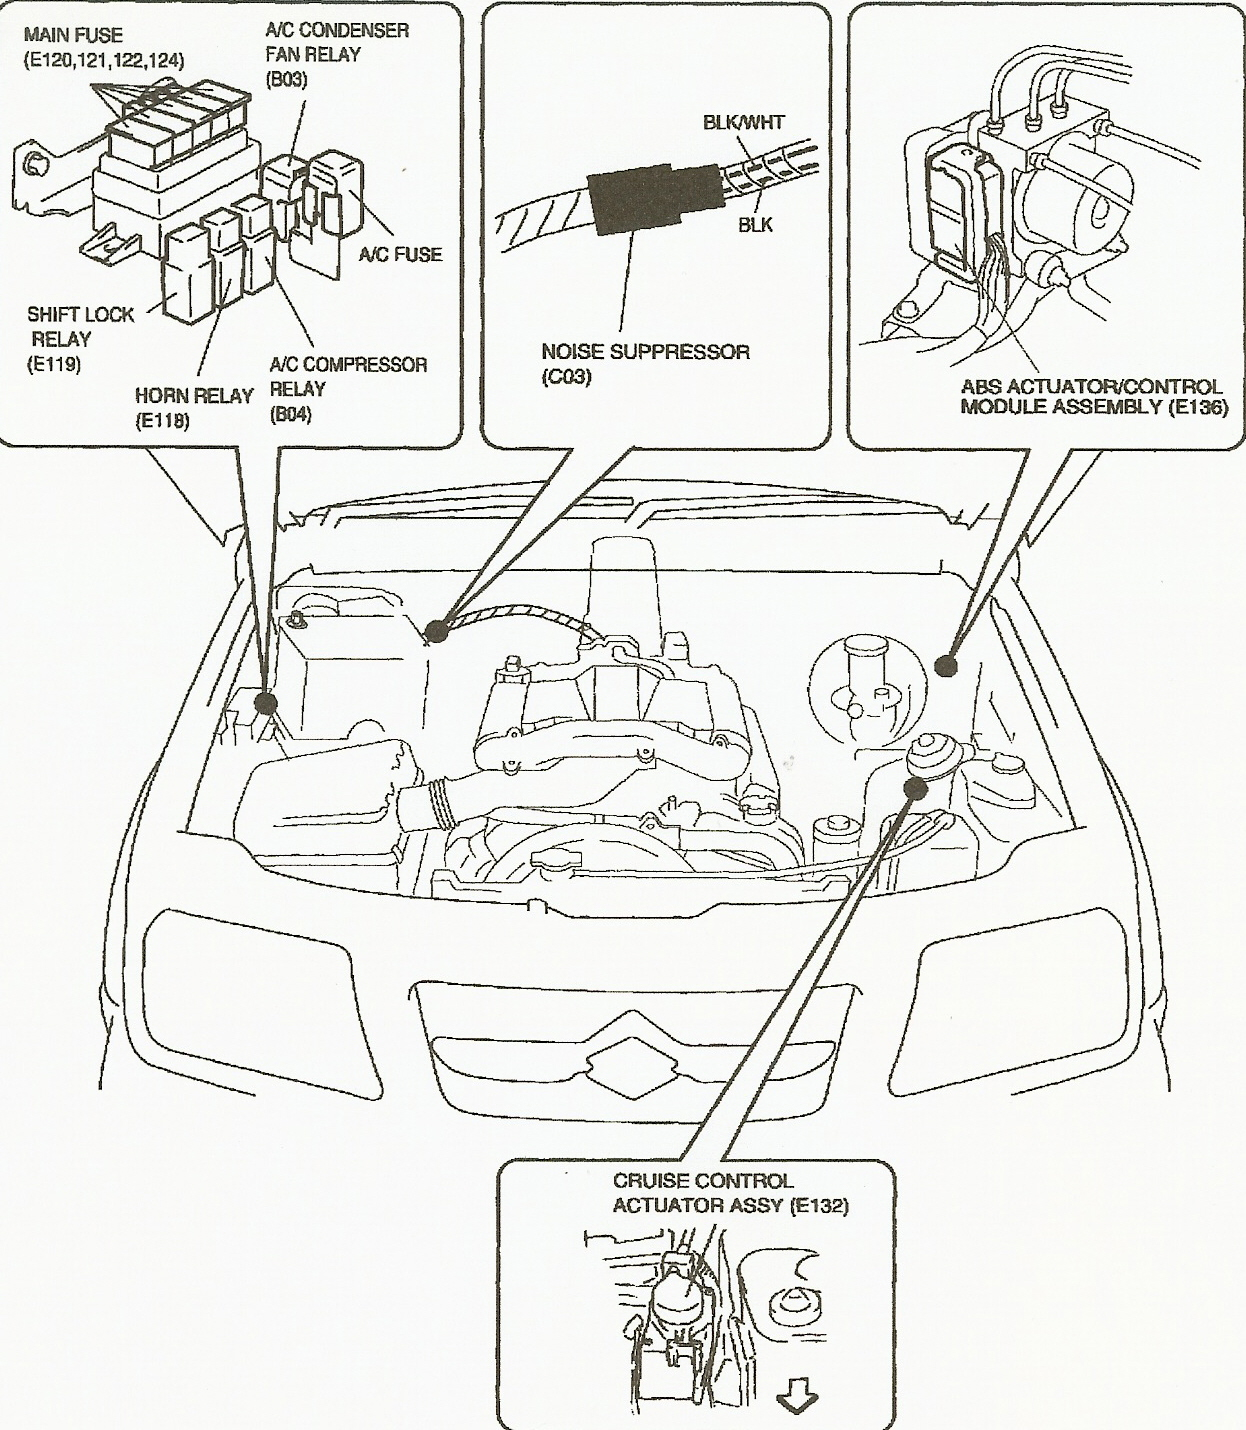 hight resolution of 1999 suzuki grand vitara fuse box wiring diagram databasesuzuki grand vitara fuse box diagram 14